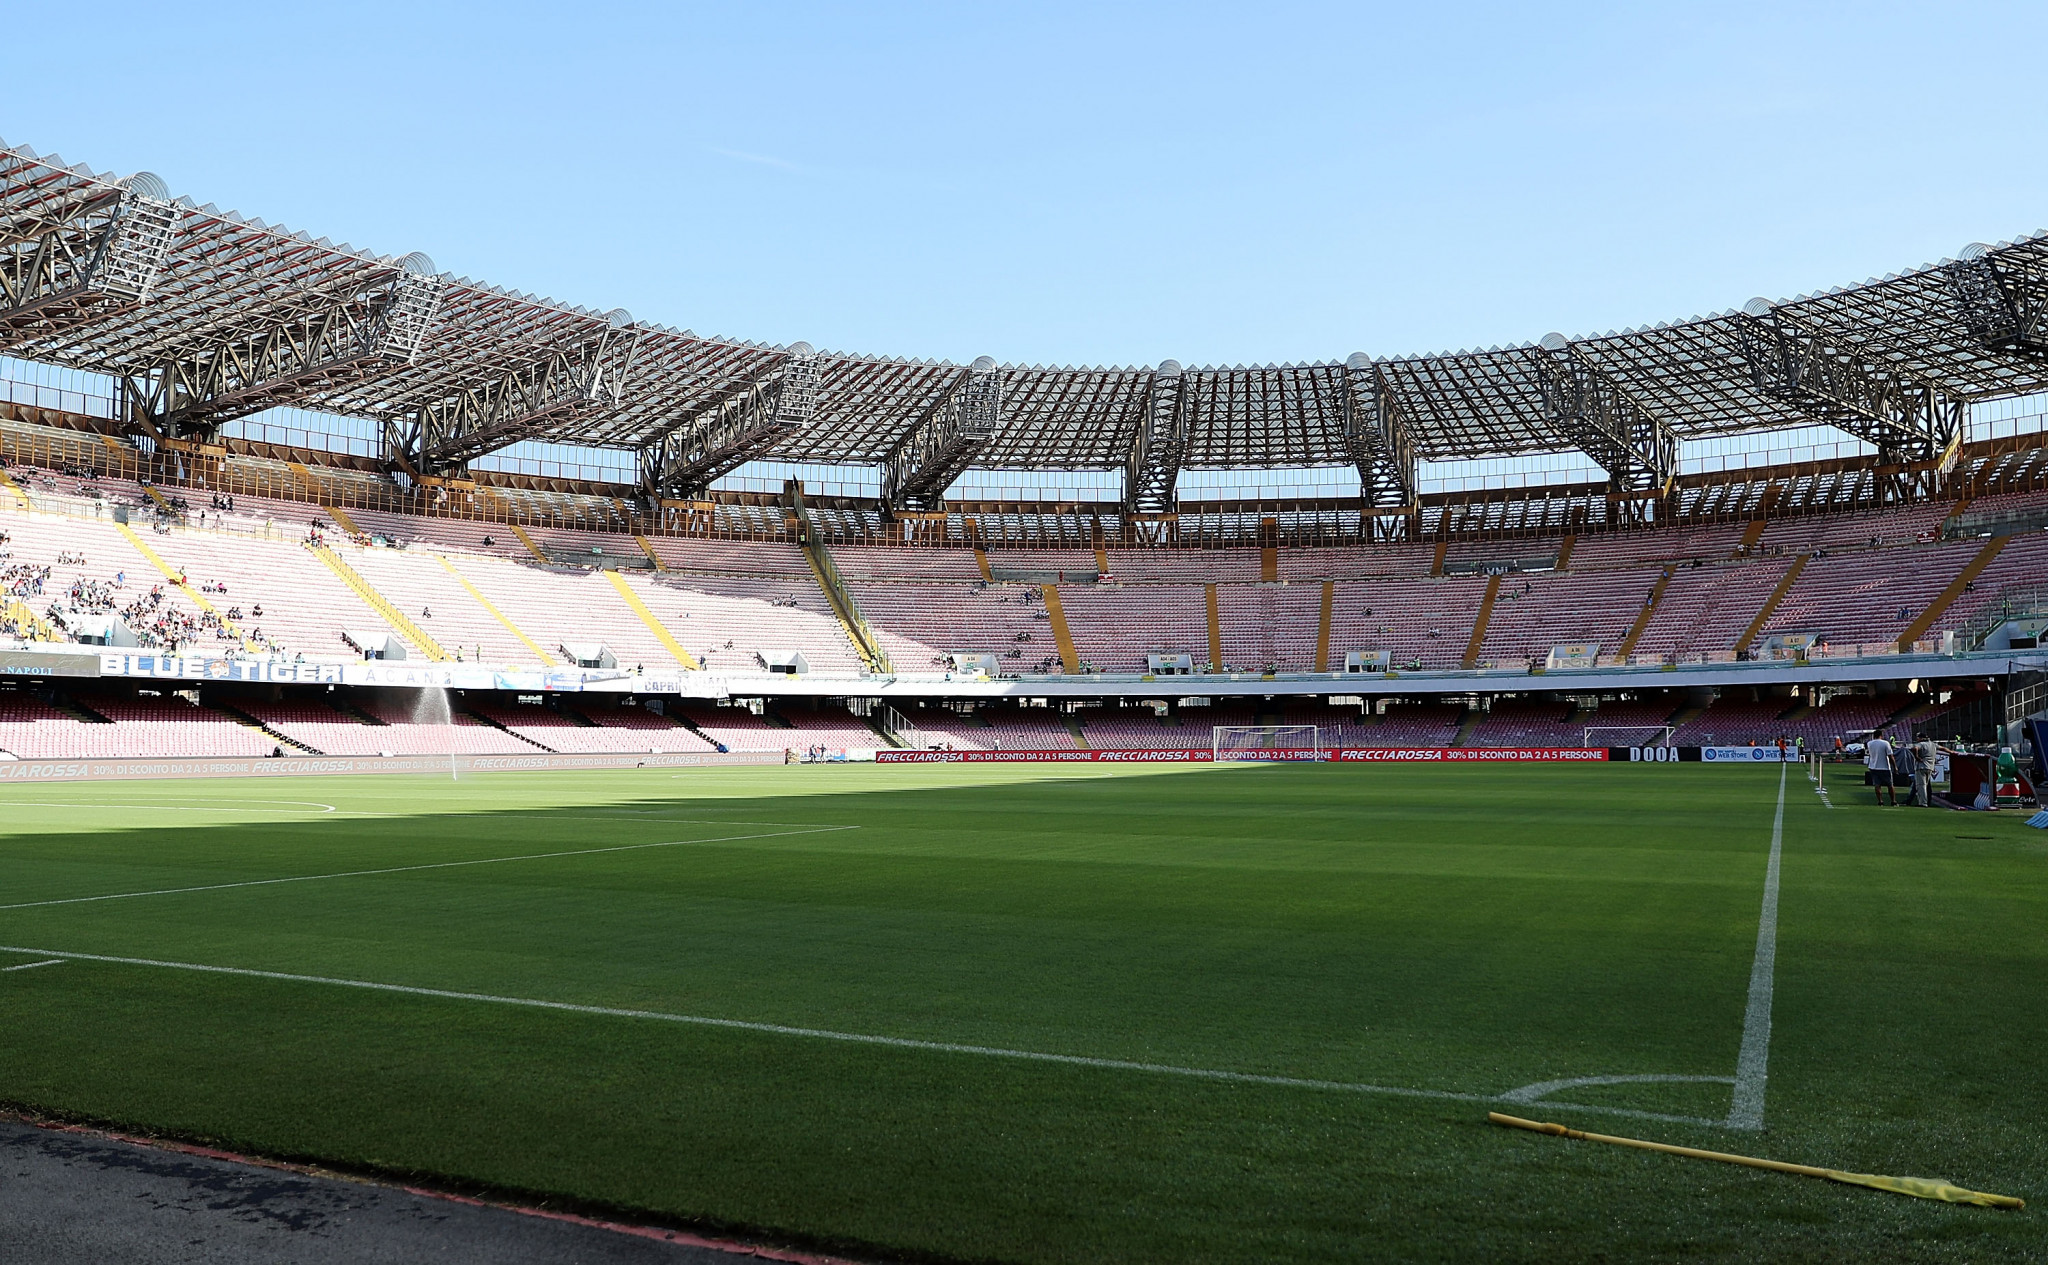 Renovation work is taking place at the San Paolo Stadium in Naples, where the Opening and Closing Ceremonies of the 2019 Summer Universiade are due to take place ©Getty Images